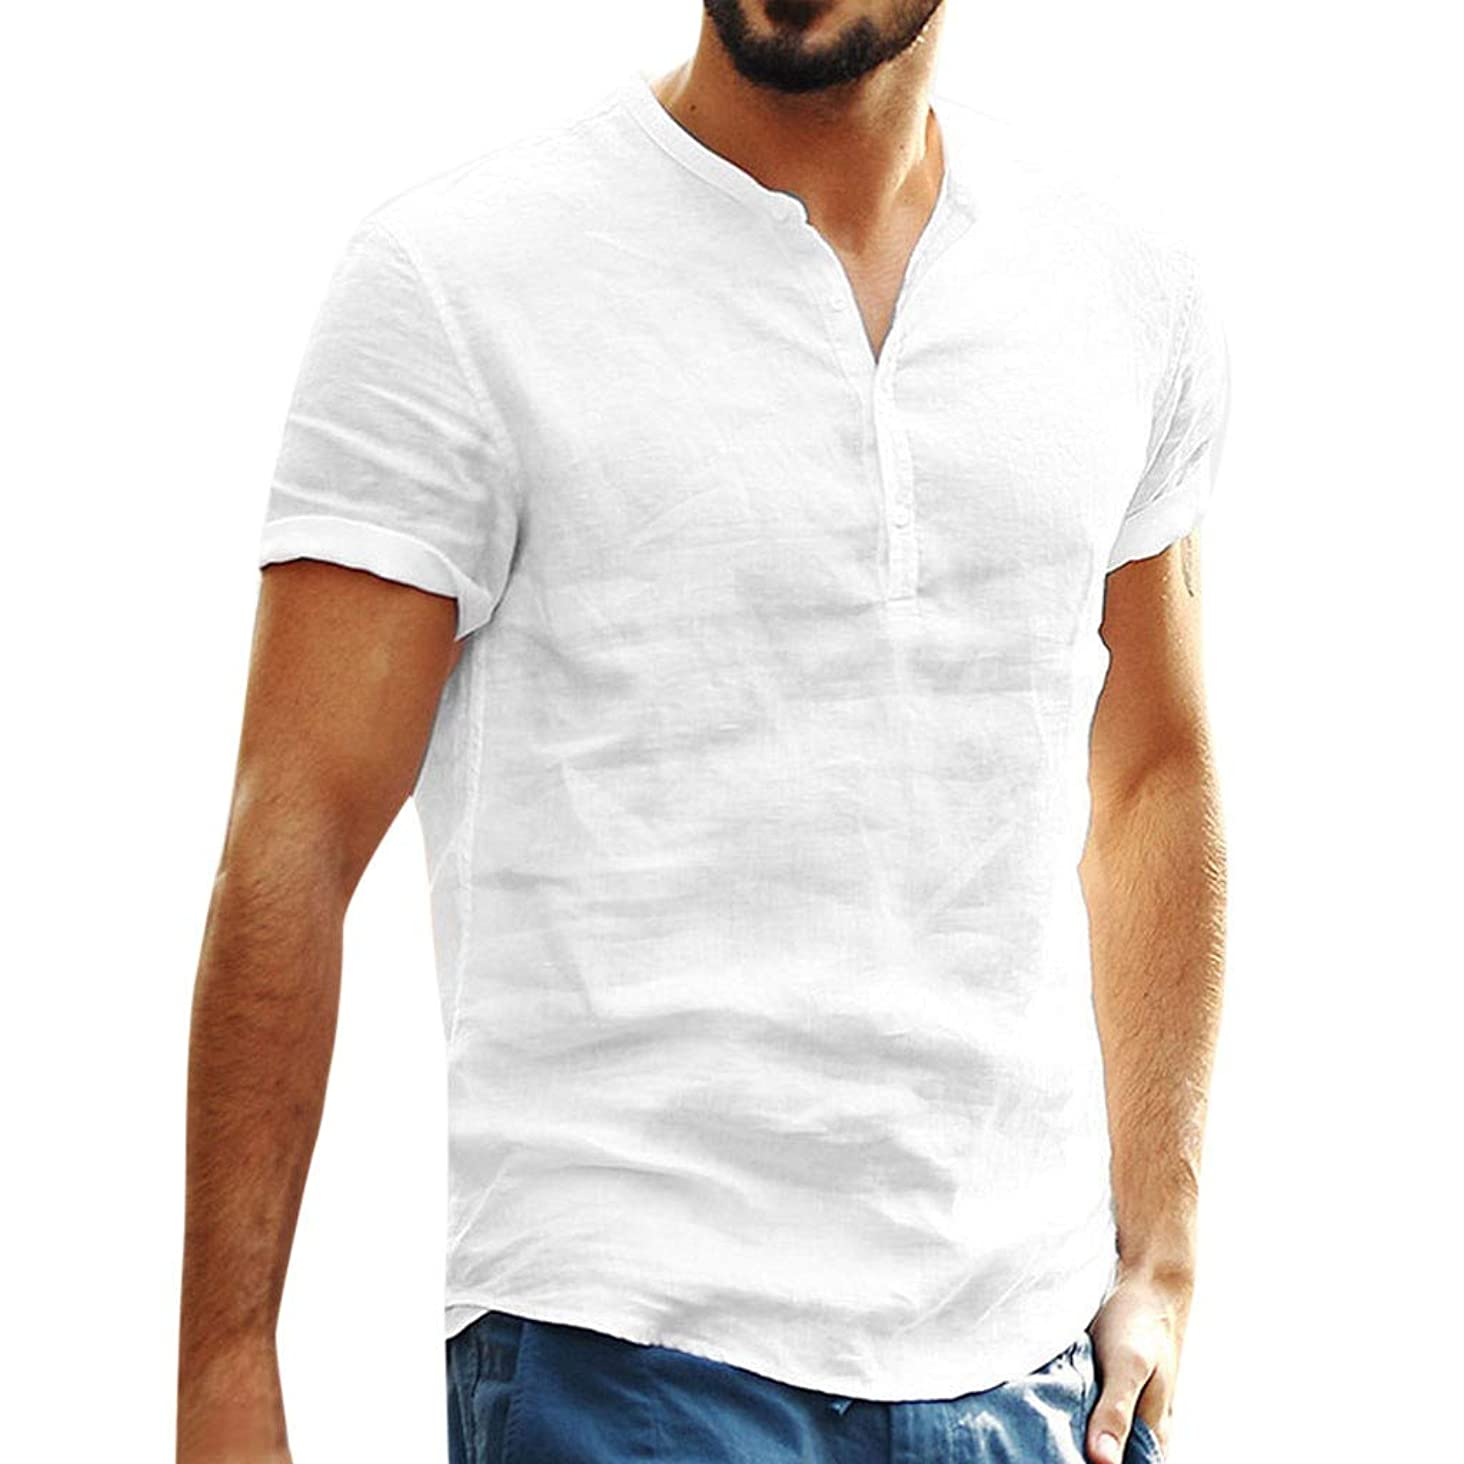 Men's Retro Fashion Casual T-Shirt,MmNote Cotton Linen Moisture Wicking Performance Simple Classic Fit Short Sleeve